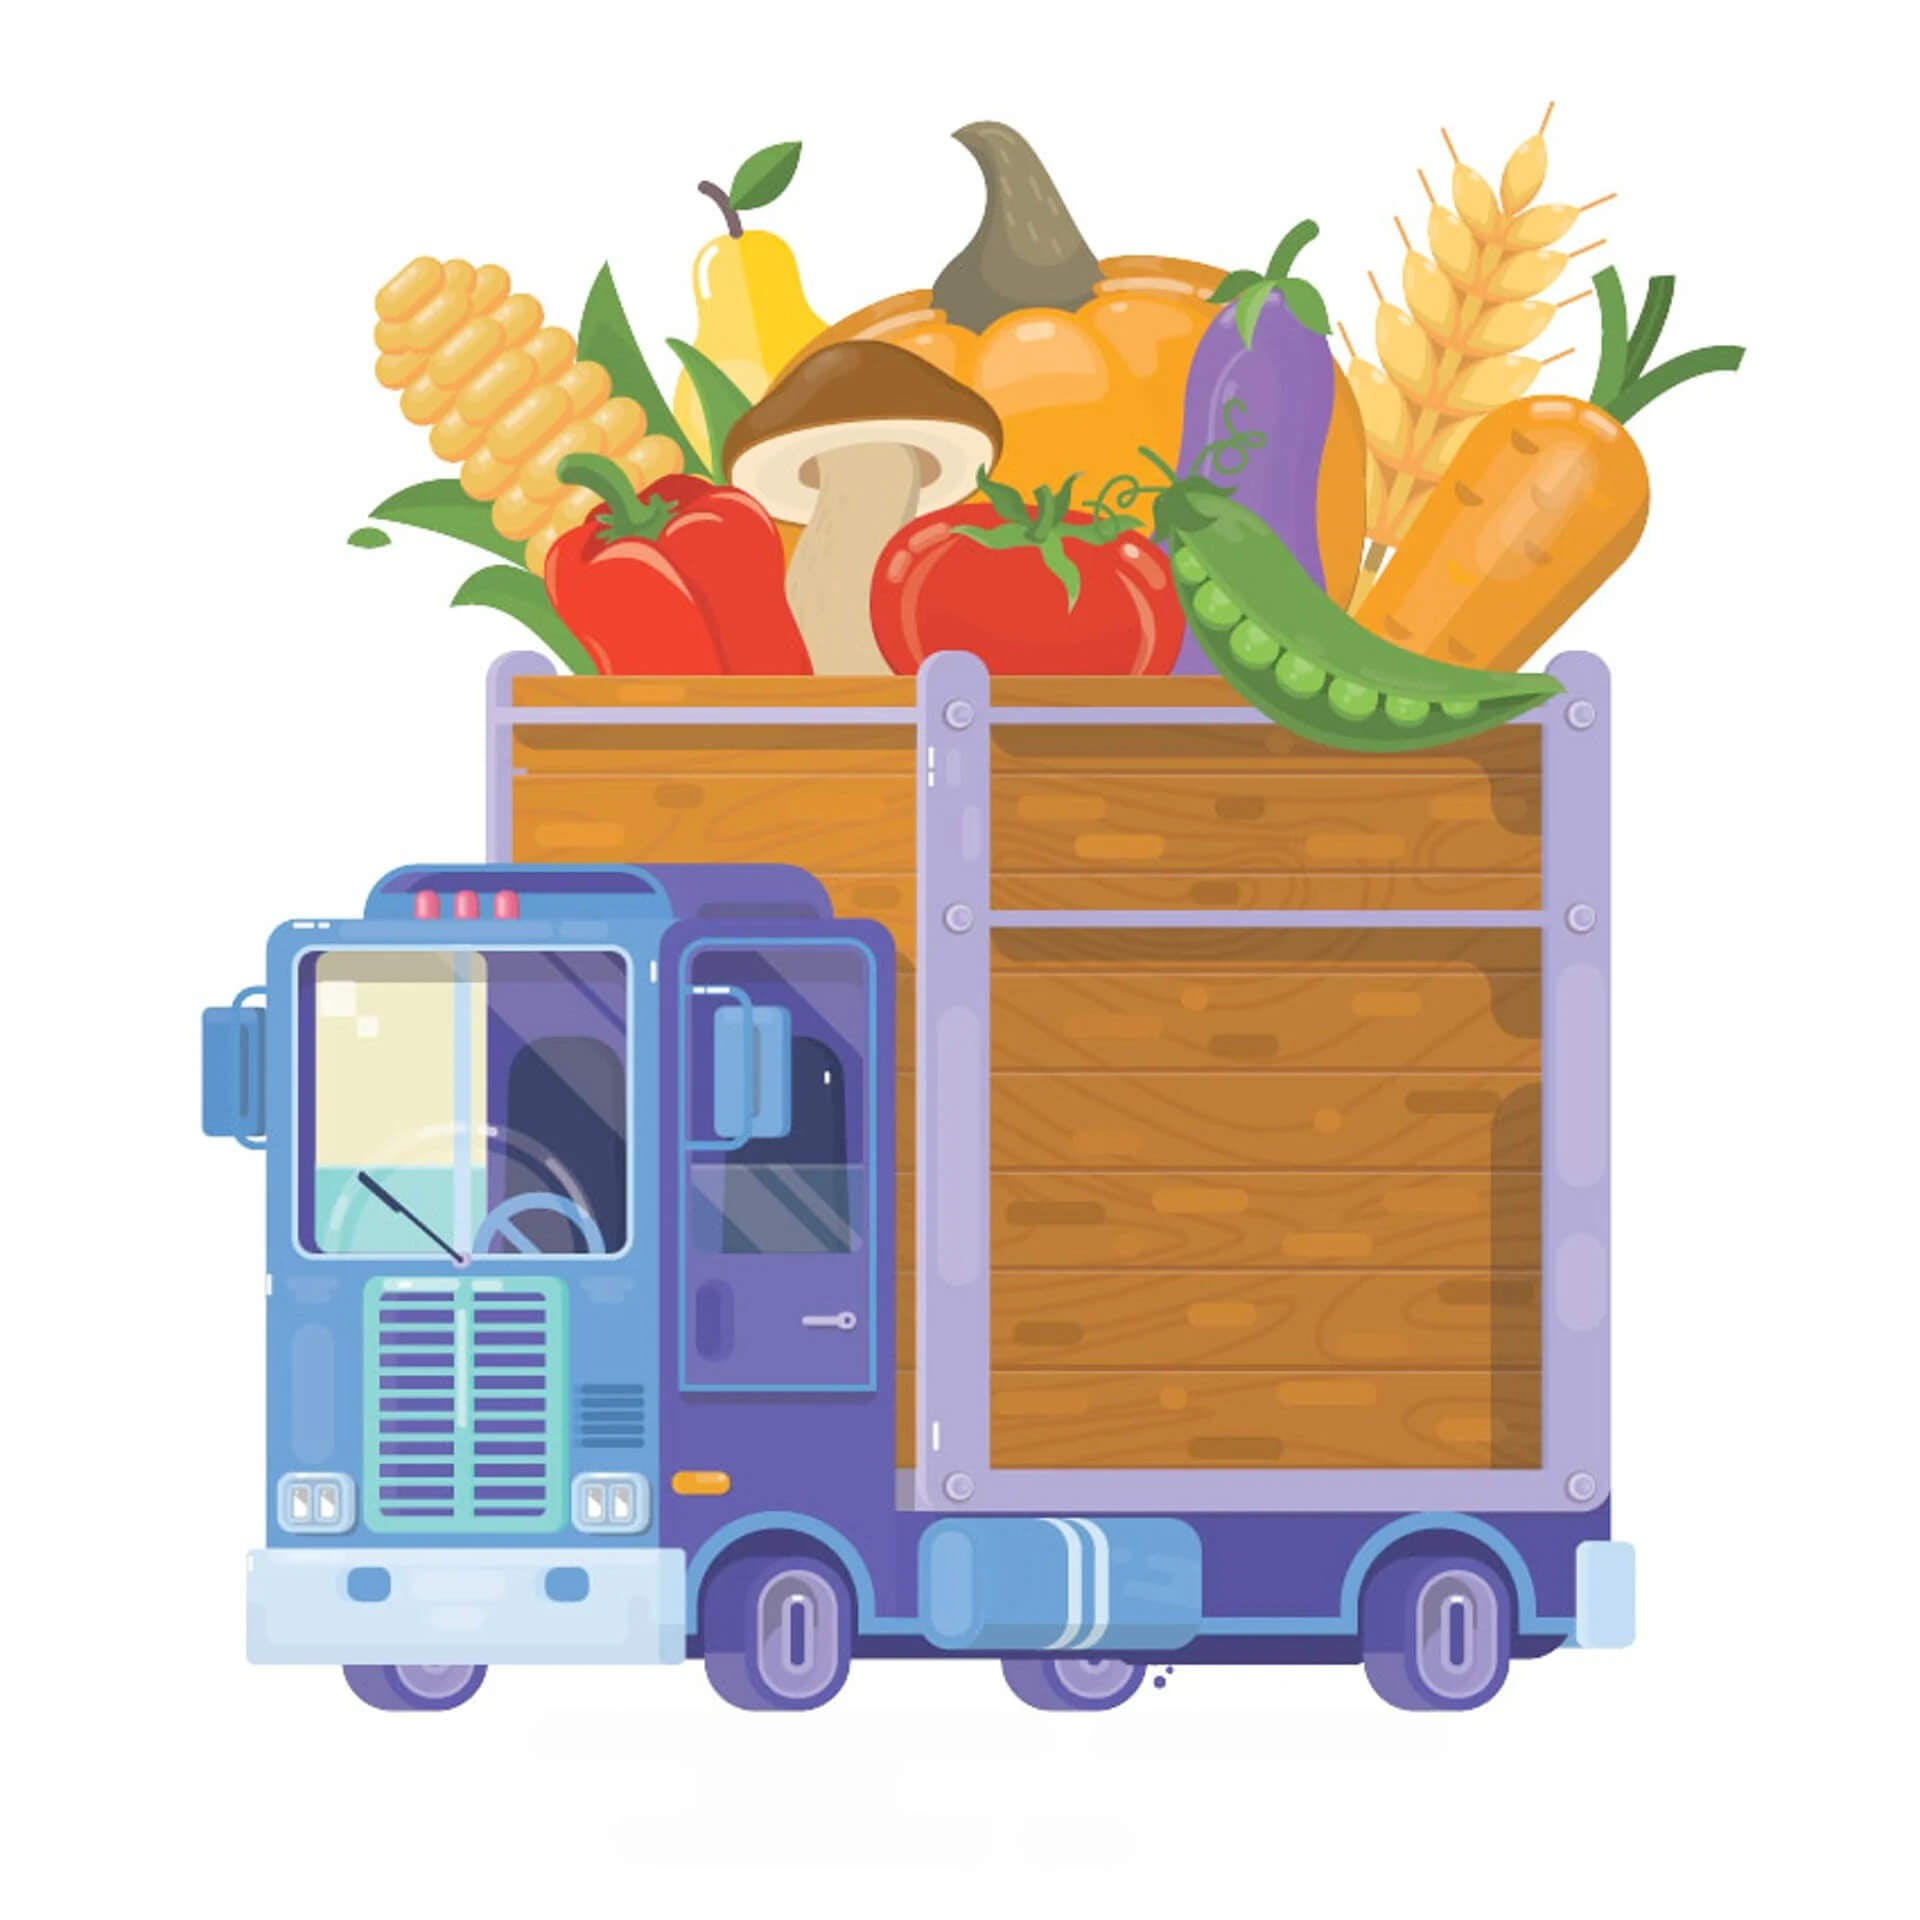 Picture of a truck carrying food